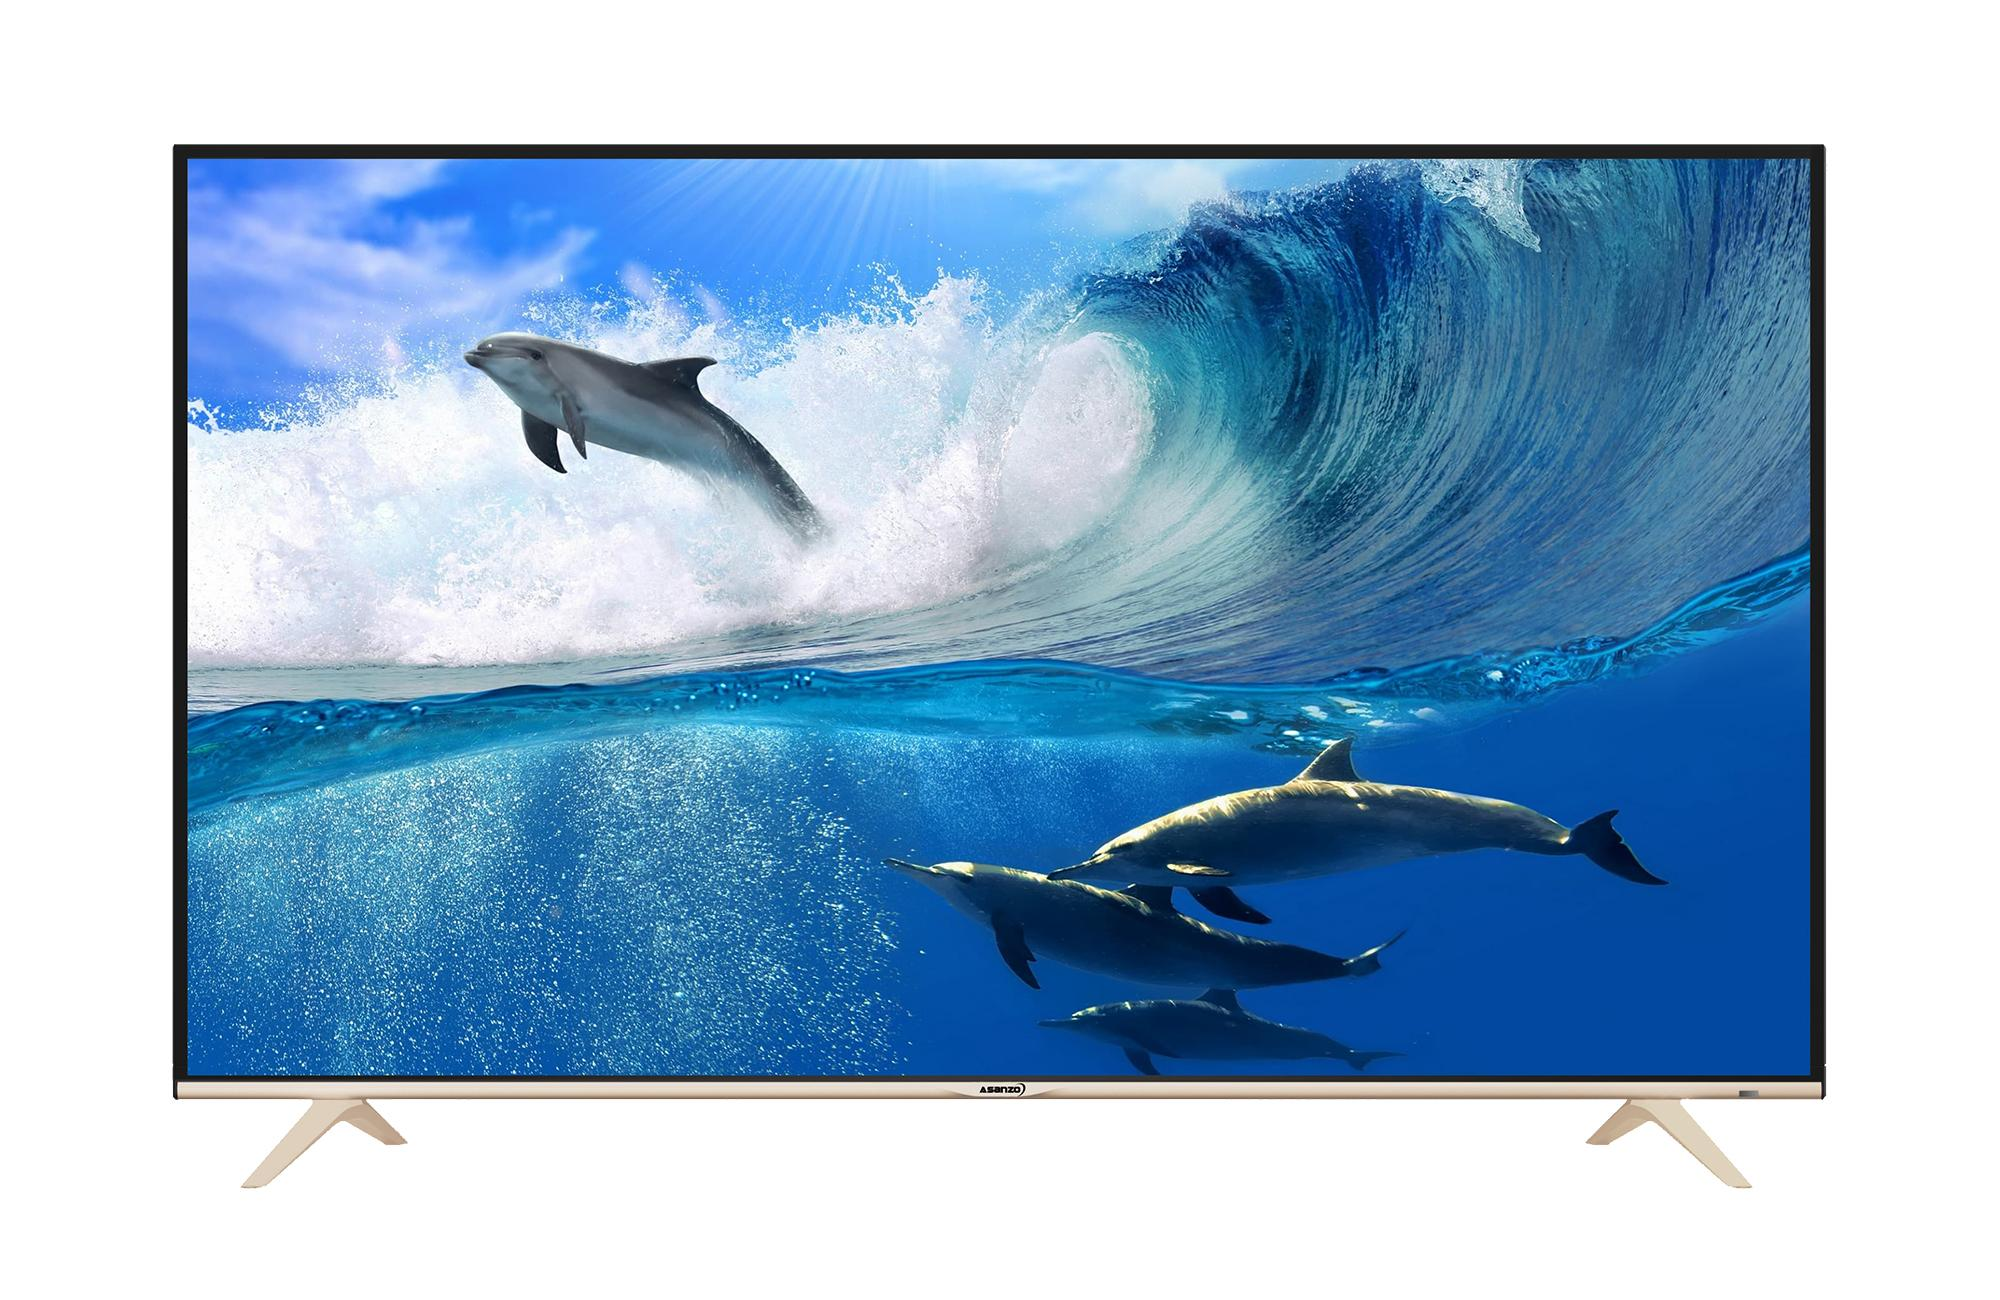 Smart Tivi Led Asanzo 43 inch Full HD – Model 43AS500